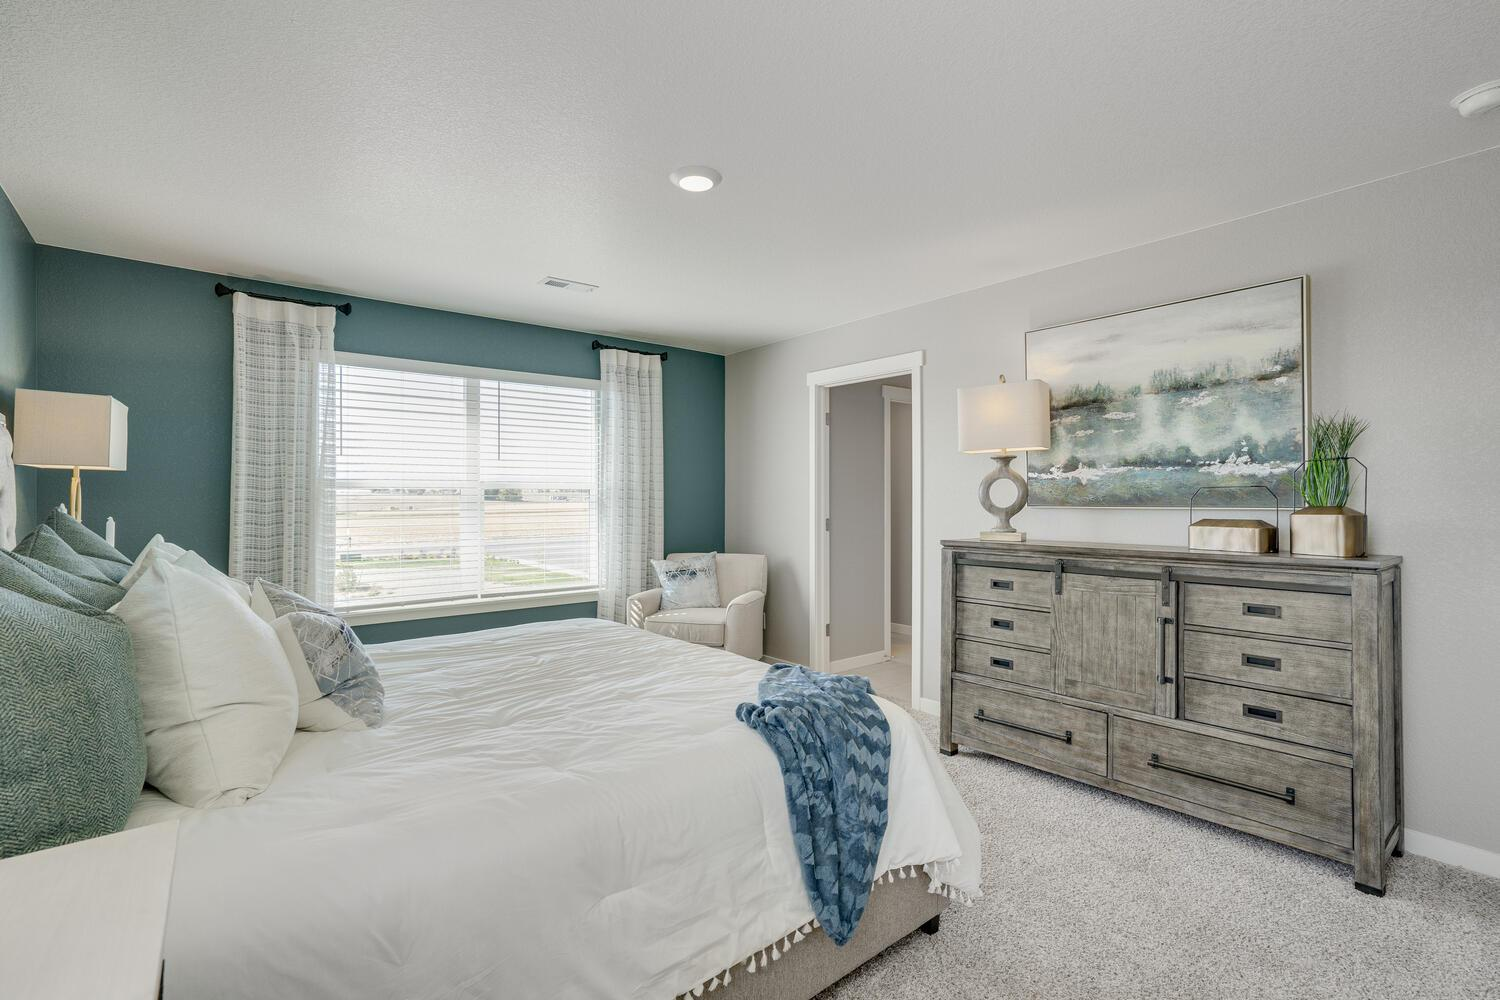 Bedroom featured in the HENLEY By D.R. Horton in Greeley, CO